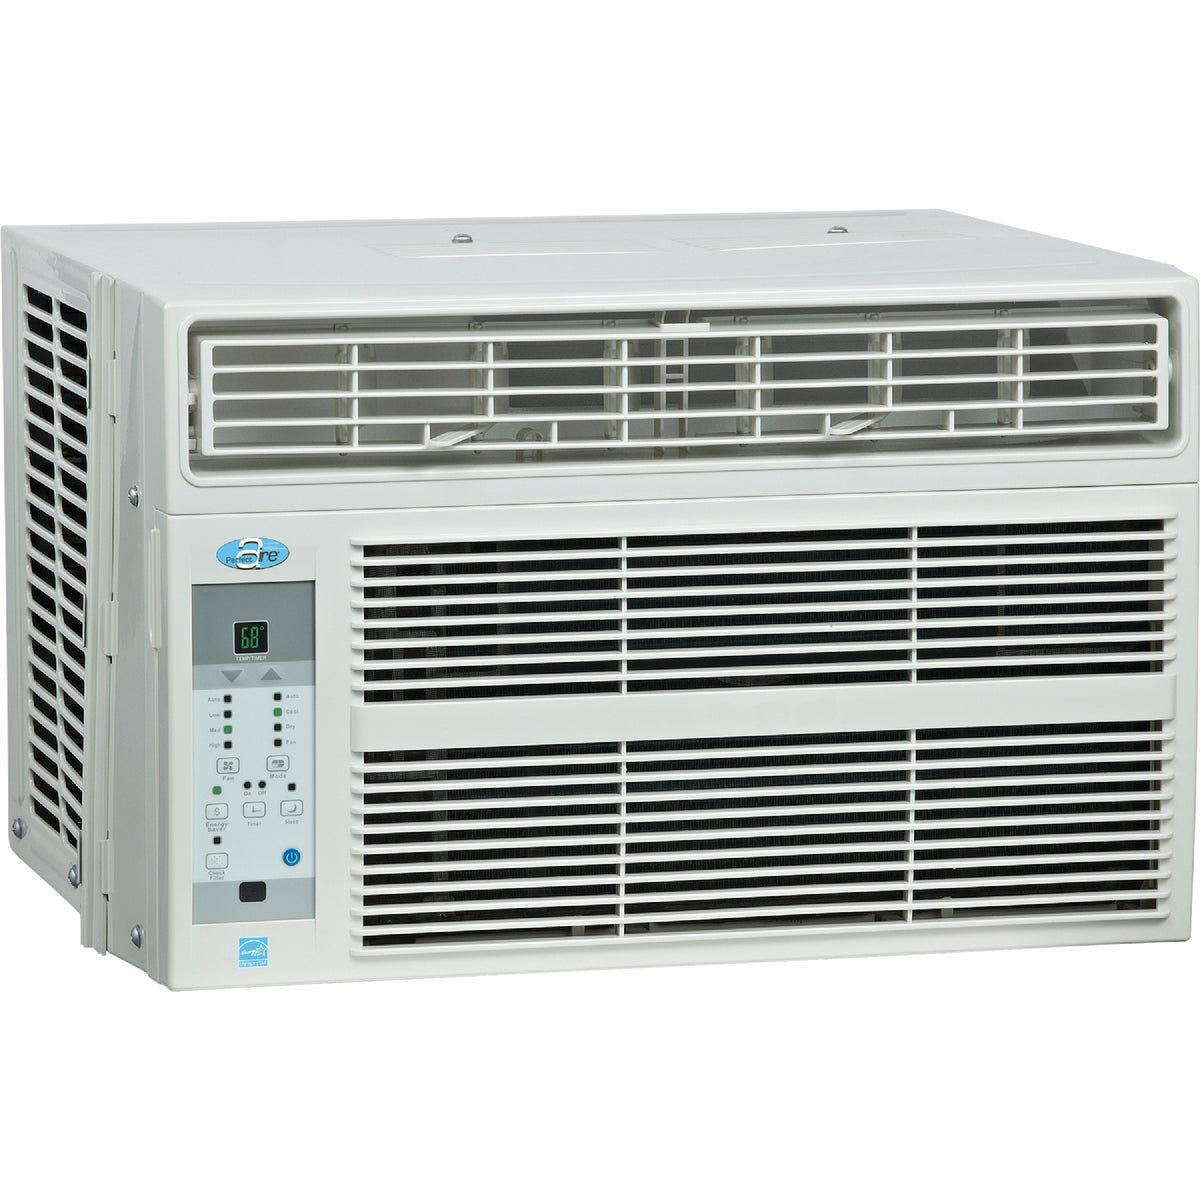 8000BTU AIR CONDITIONER - 2PAC8000 by Perfect Aire